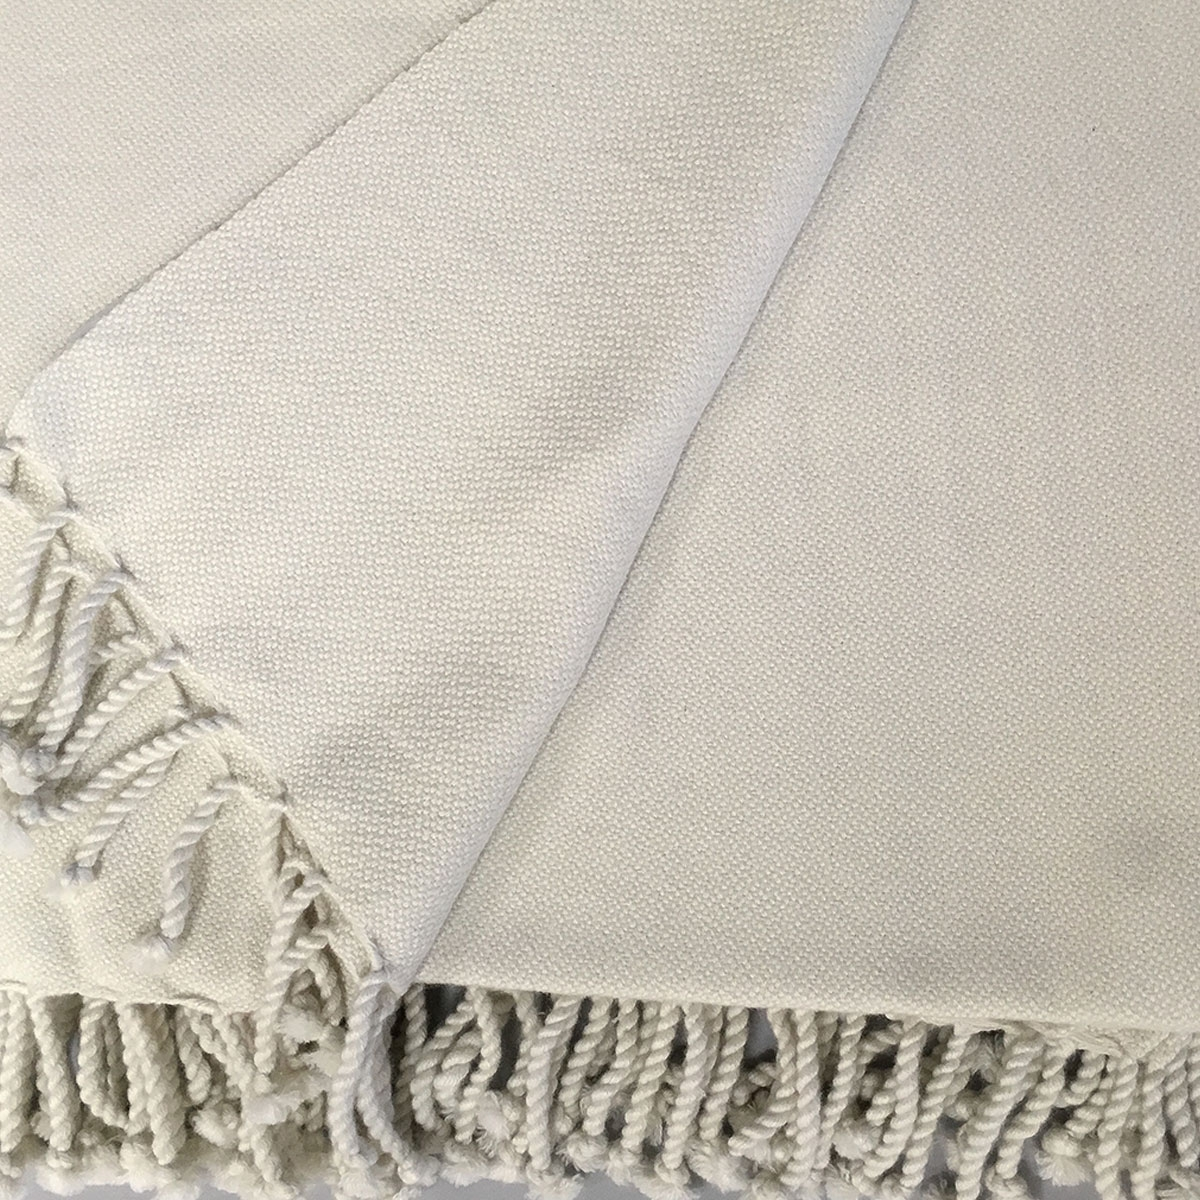 Amdo Hand Loomed Cashmere Throws